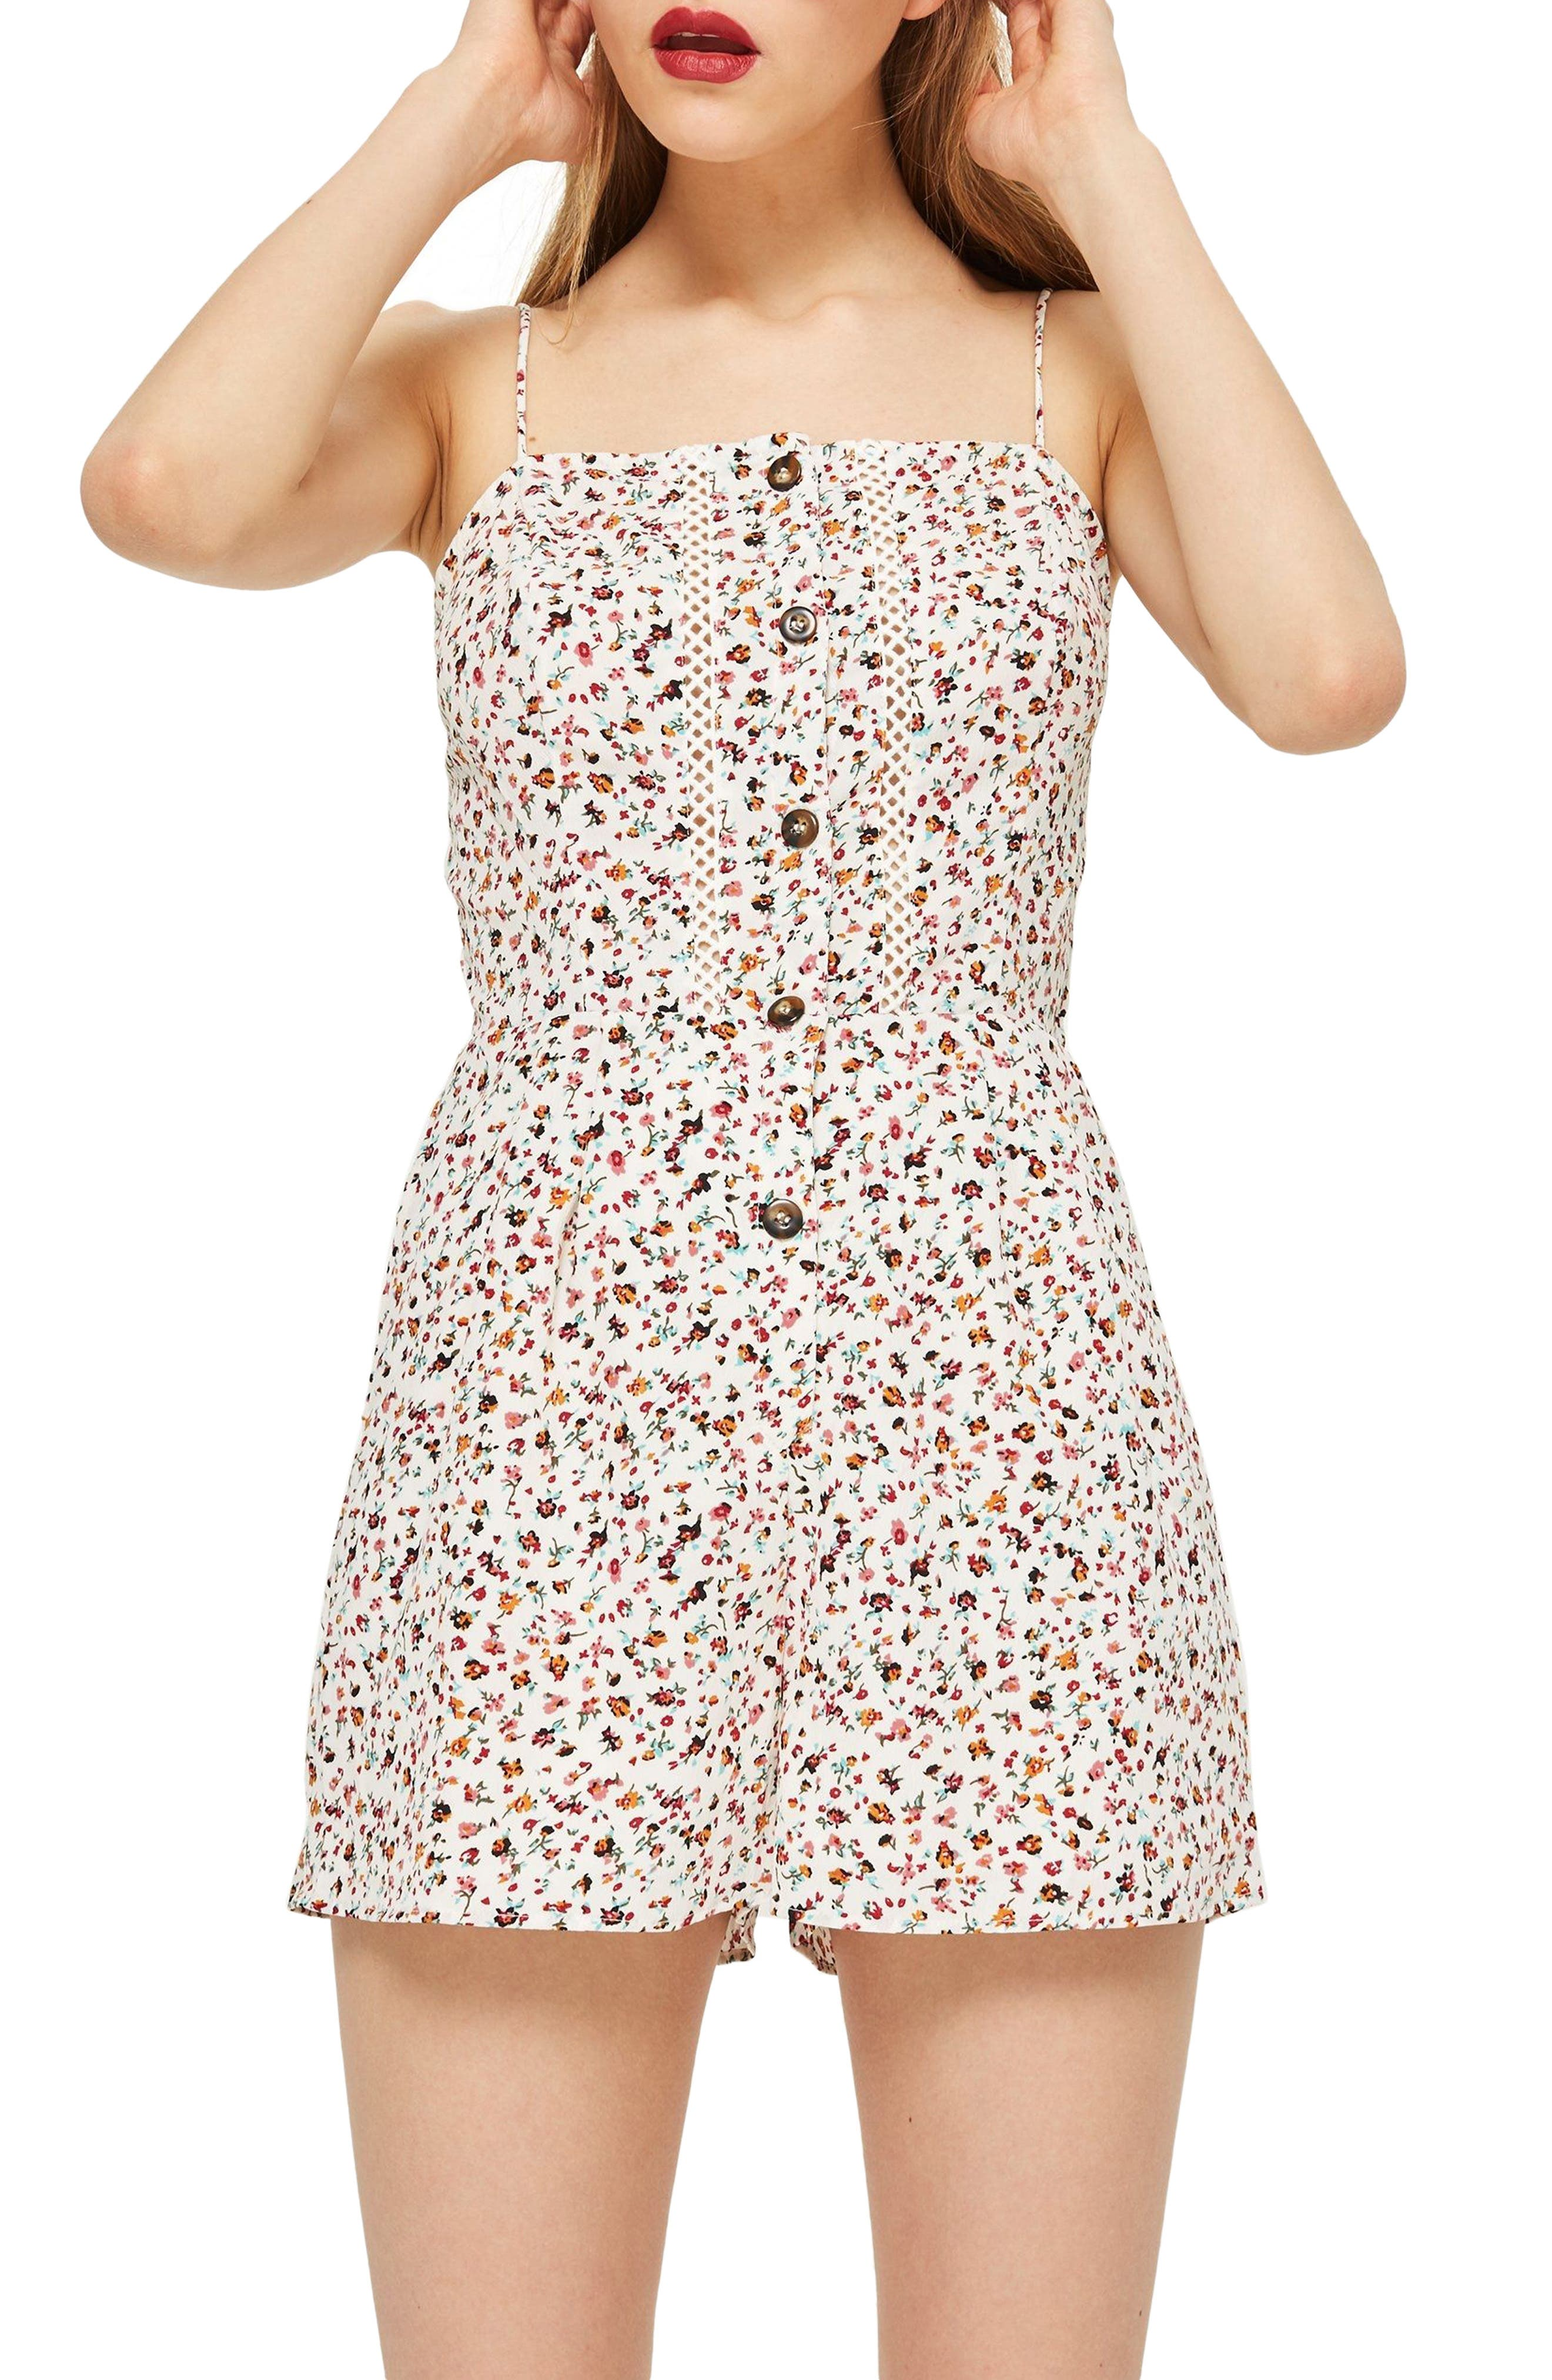 Ditsy Crochet Romper,                             Main thumbnail 1, color,                             900